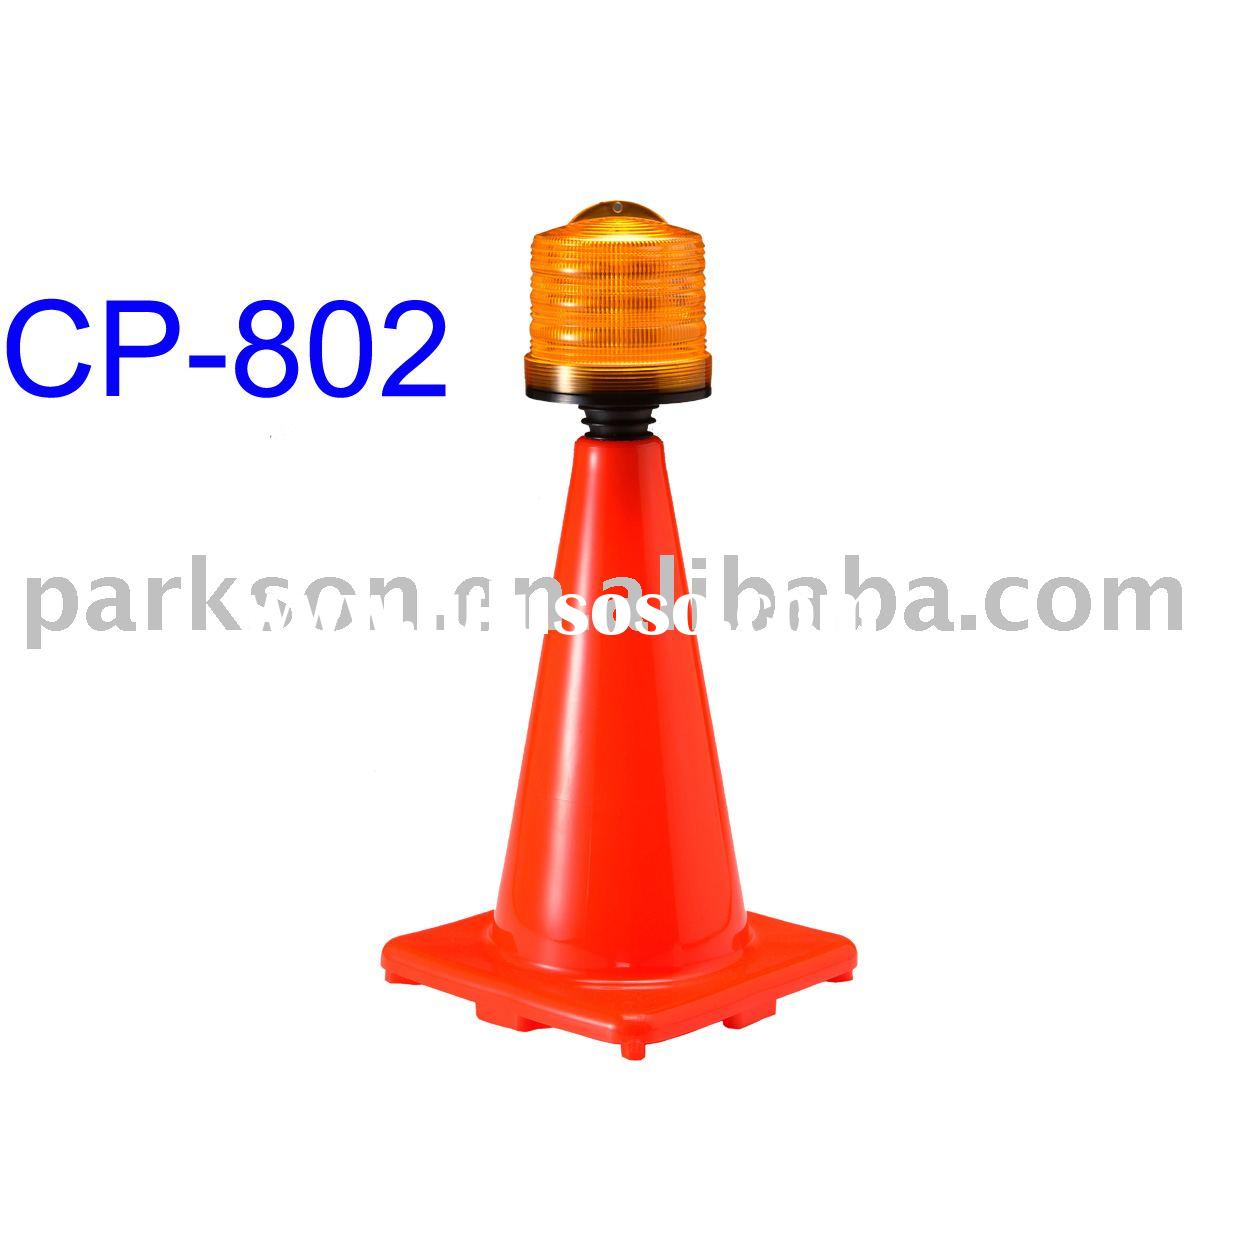 Tractor Safety Lights : Led safety warning light